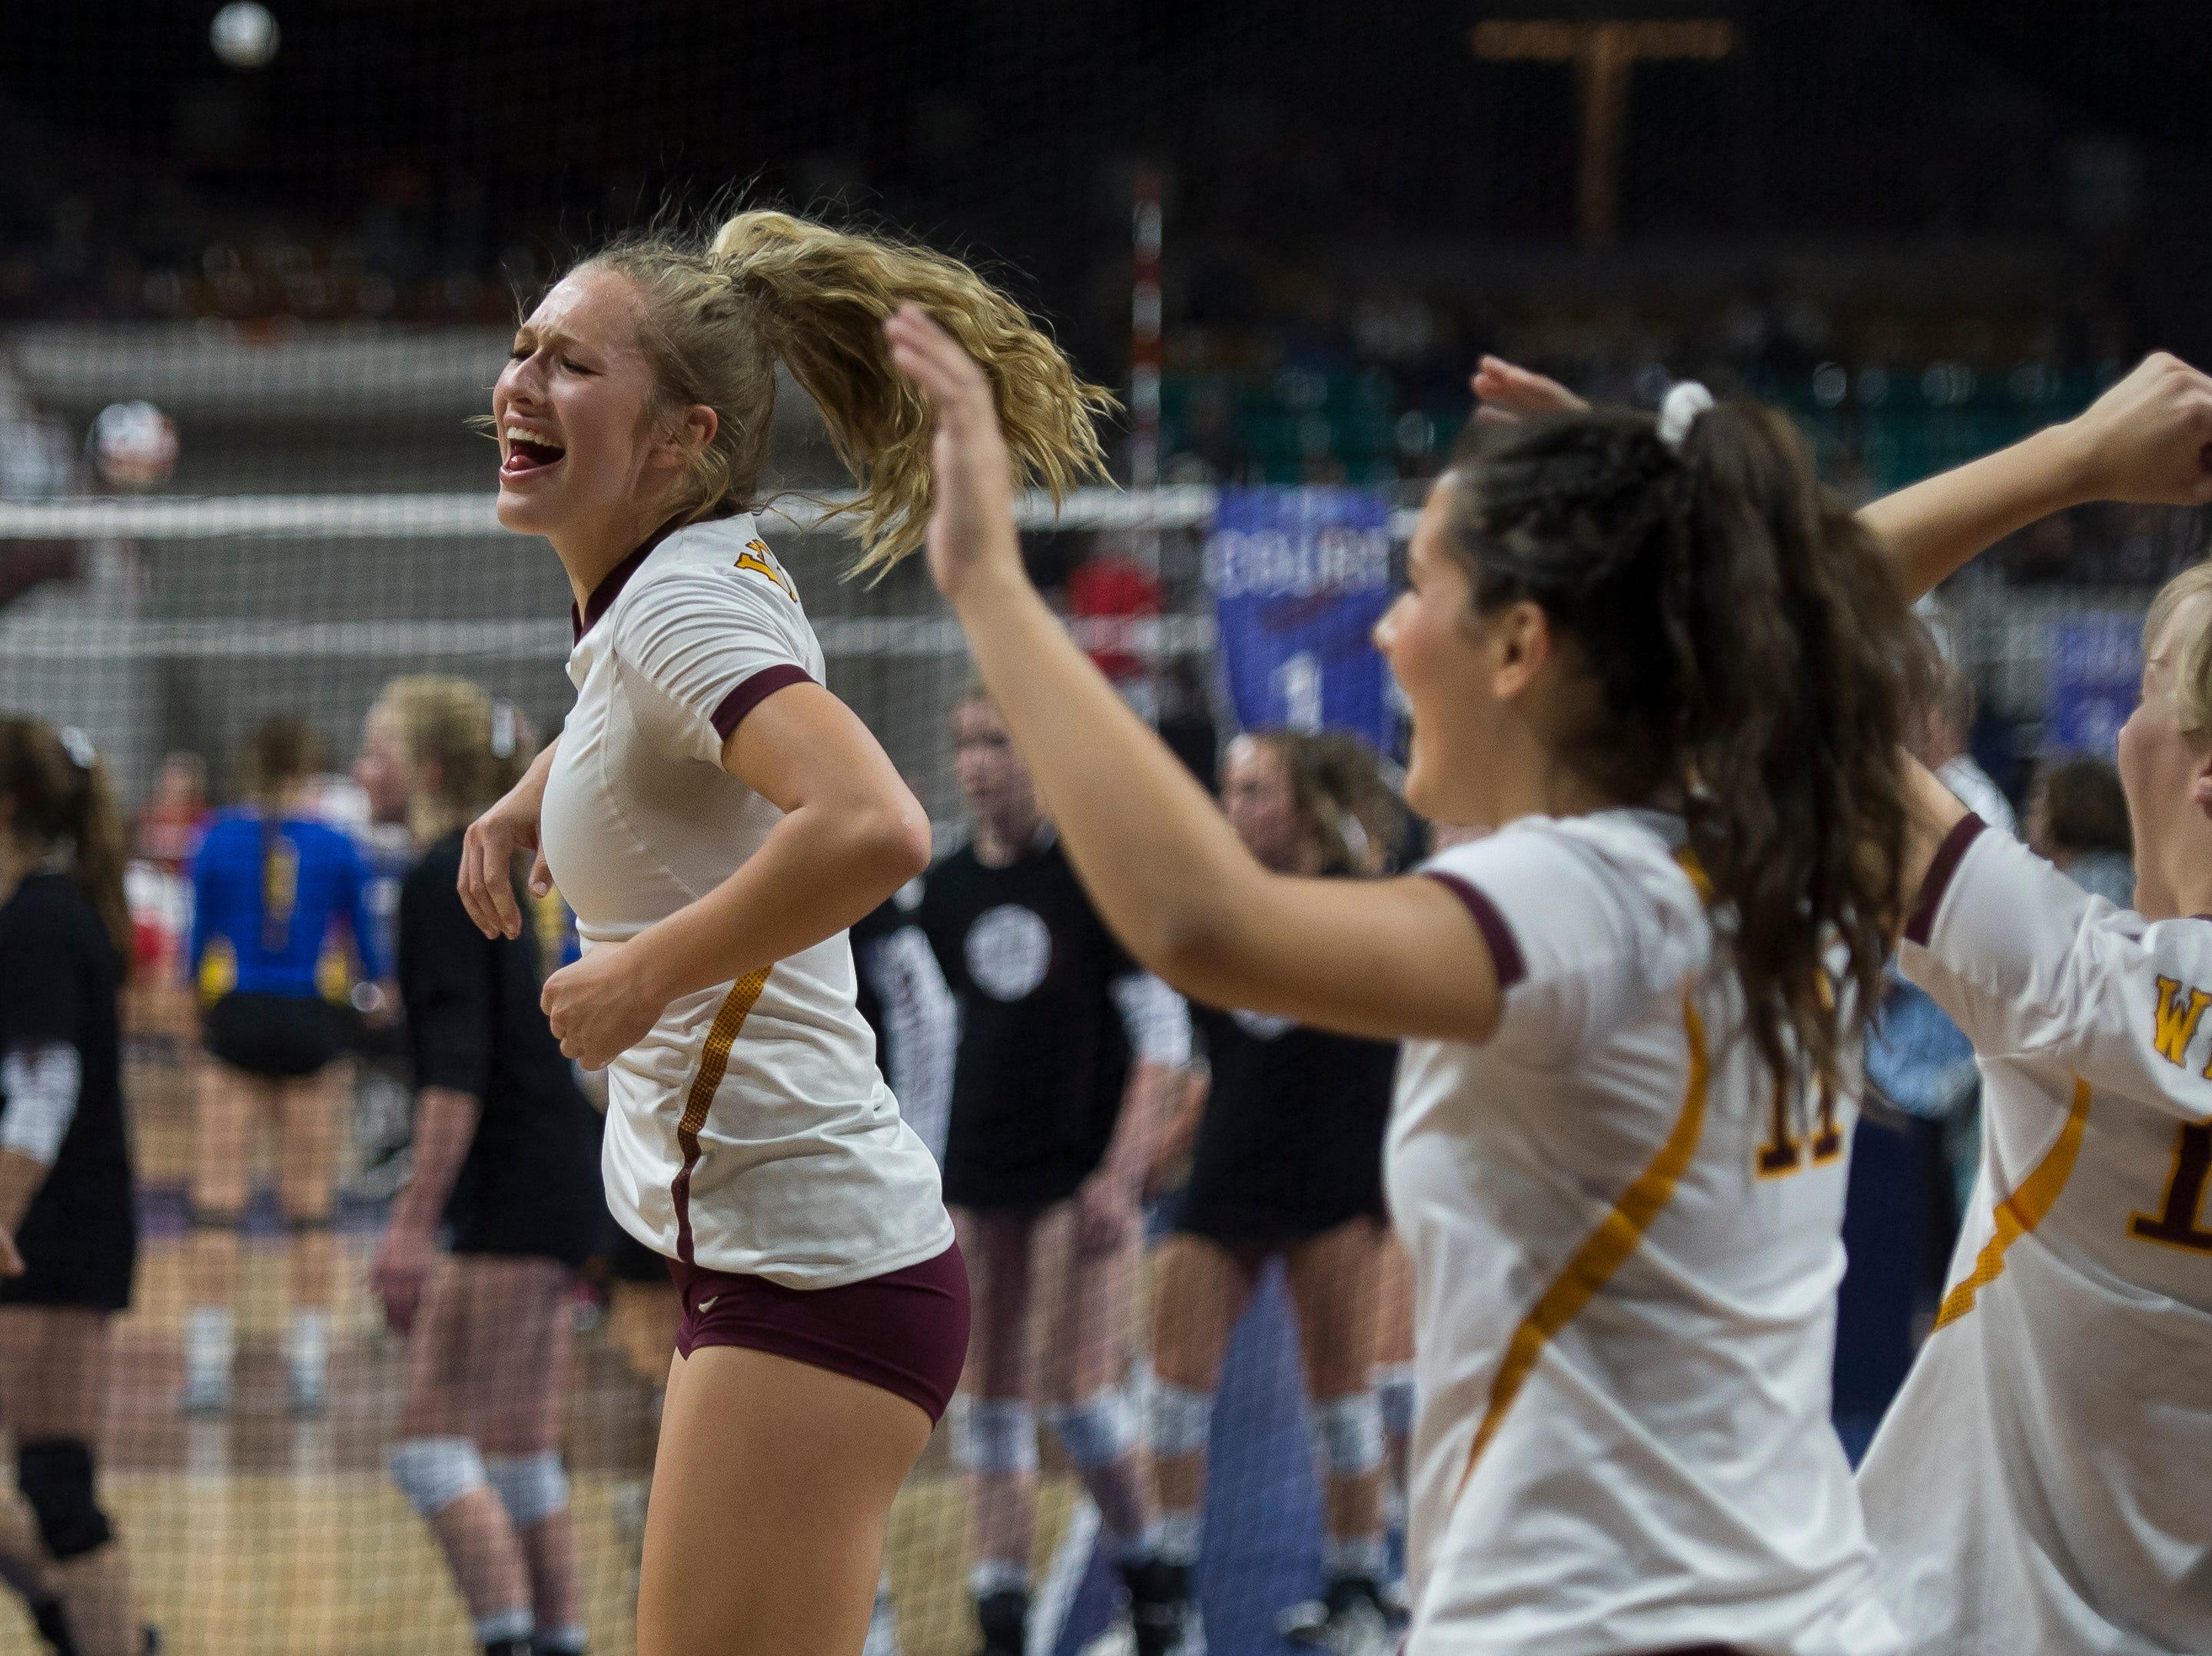 Windsor High School senior Rylee Greiman (5) celebrate a pint with her teammates during a state first round game against Fossil Ridge High School on Thursday, Nov. 8, 2018, at the Denver Coliseum in Denver, Colo.